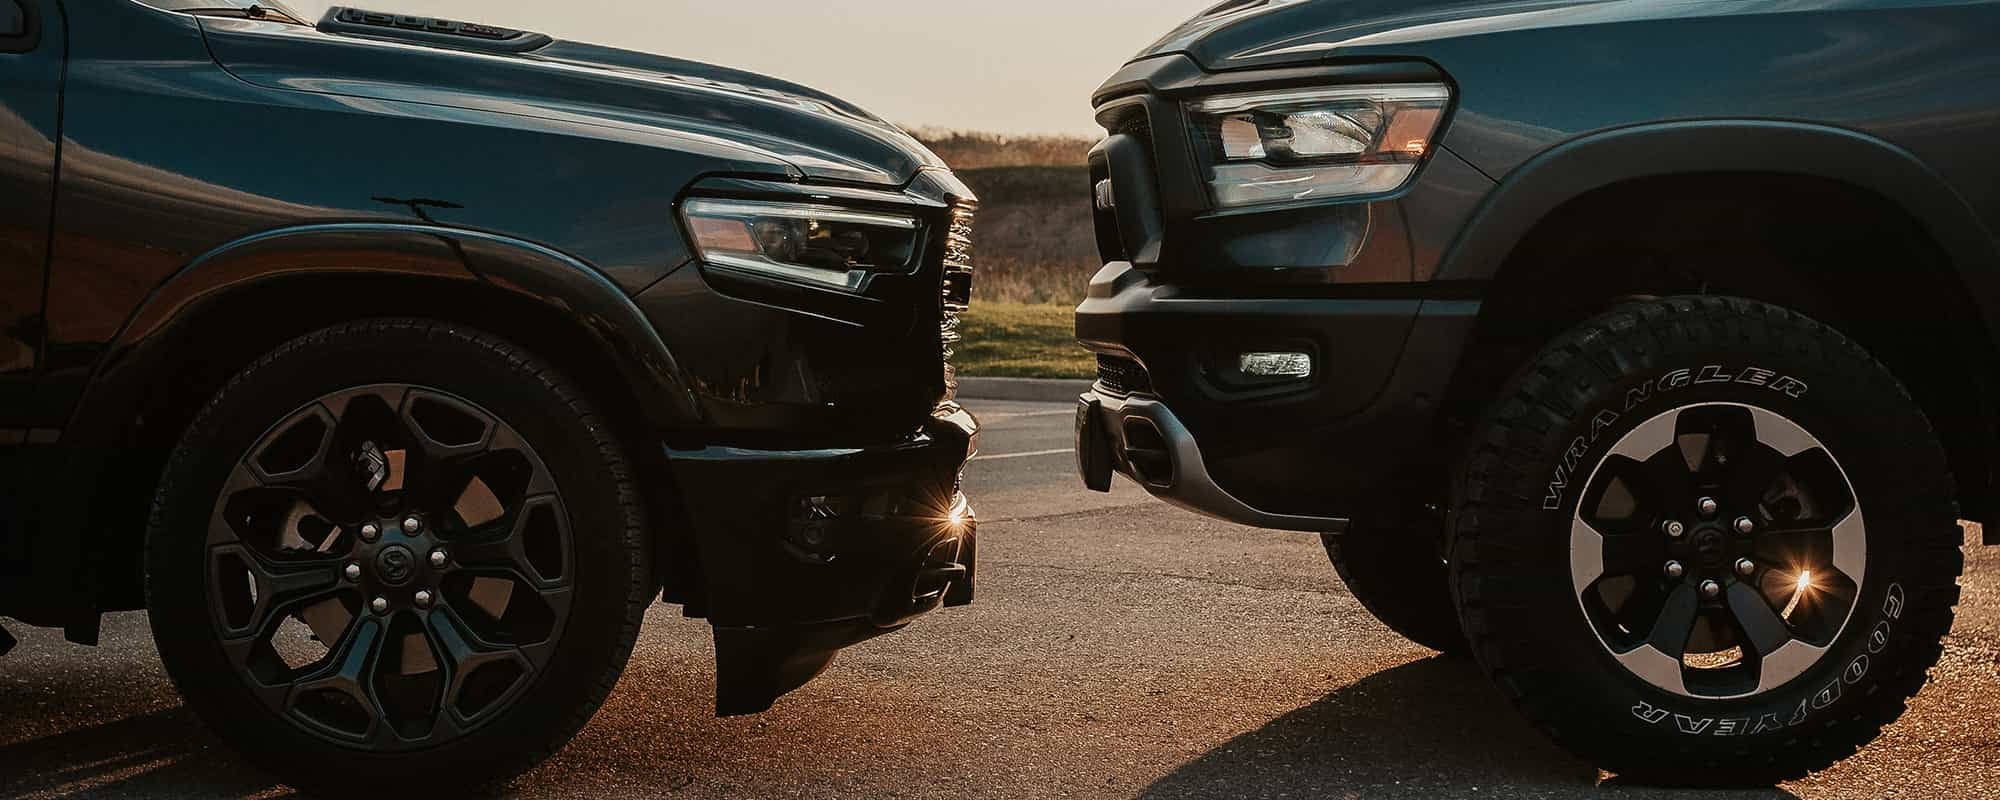 Two Ram 1500 trucks facing each other, one lowered truck on the left and one lifted truck on the right, on the street at sunset